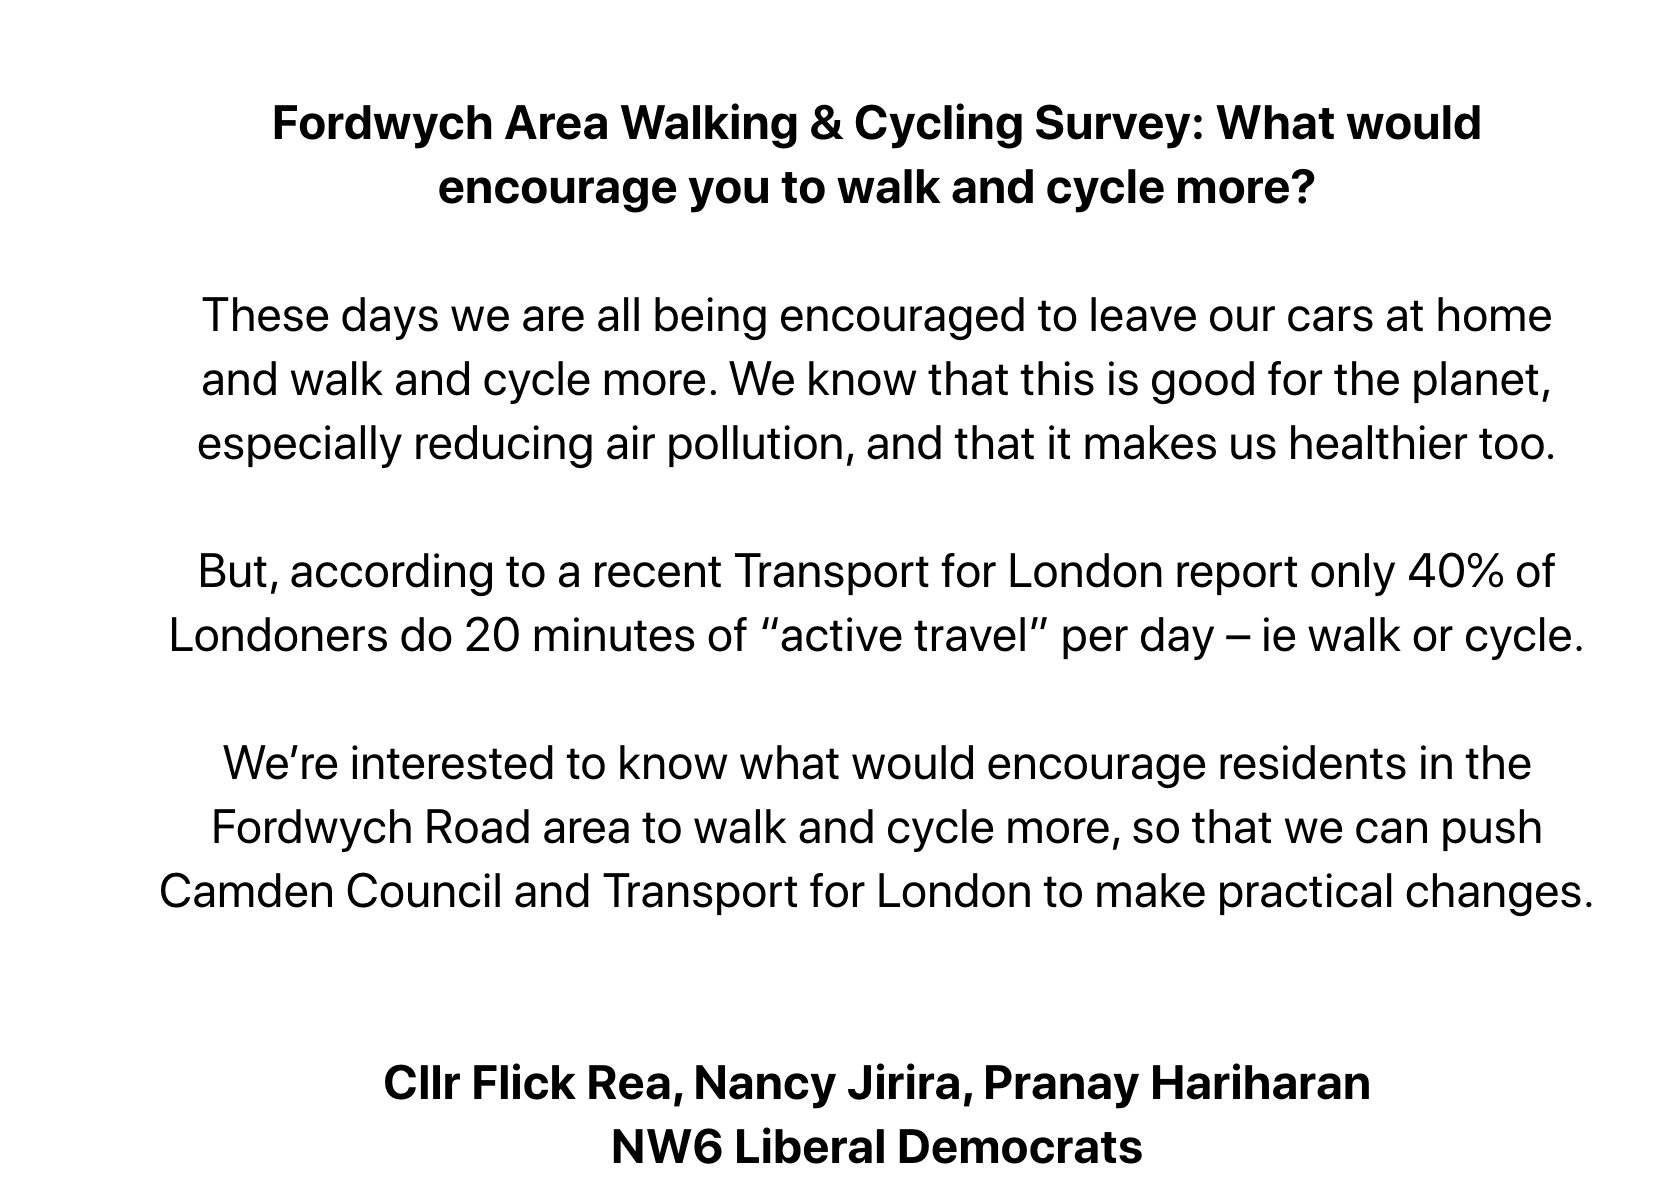 Fordwych Area Walking & Cycling Survey: What would encourage you to walk and cycle more?